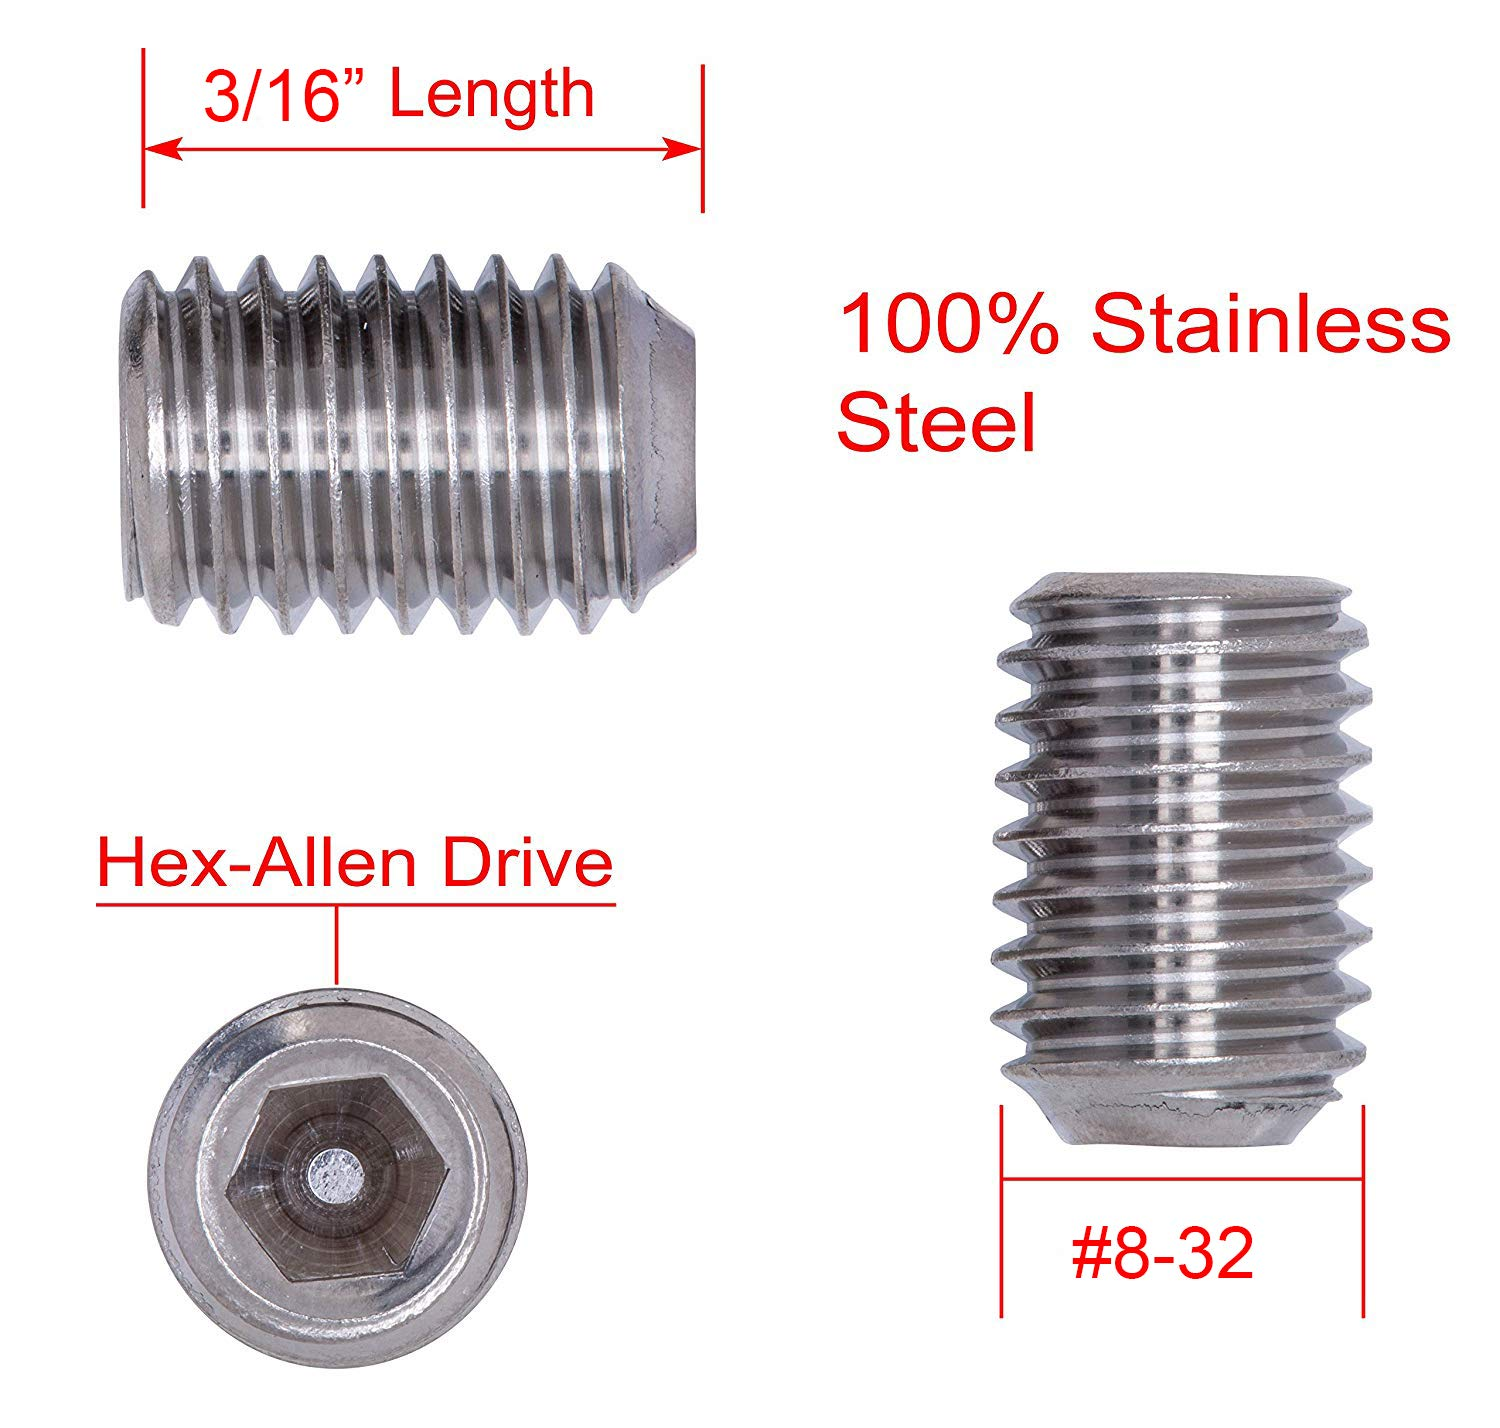 25 pc 18-8 304 Stainless Steel Screws by Bolt Dropper 3//8-16 X 3//8 Stainless Set Screw with Hex Allen Head Drive and Oval Point